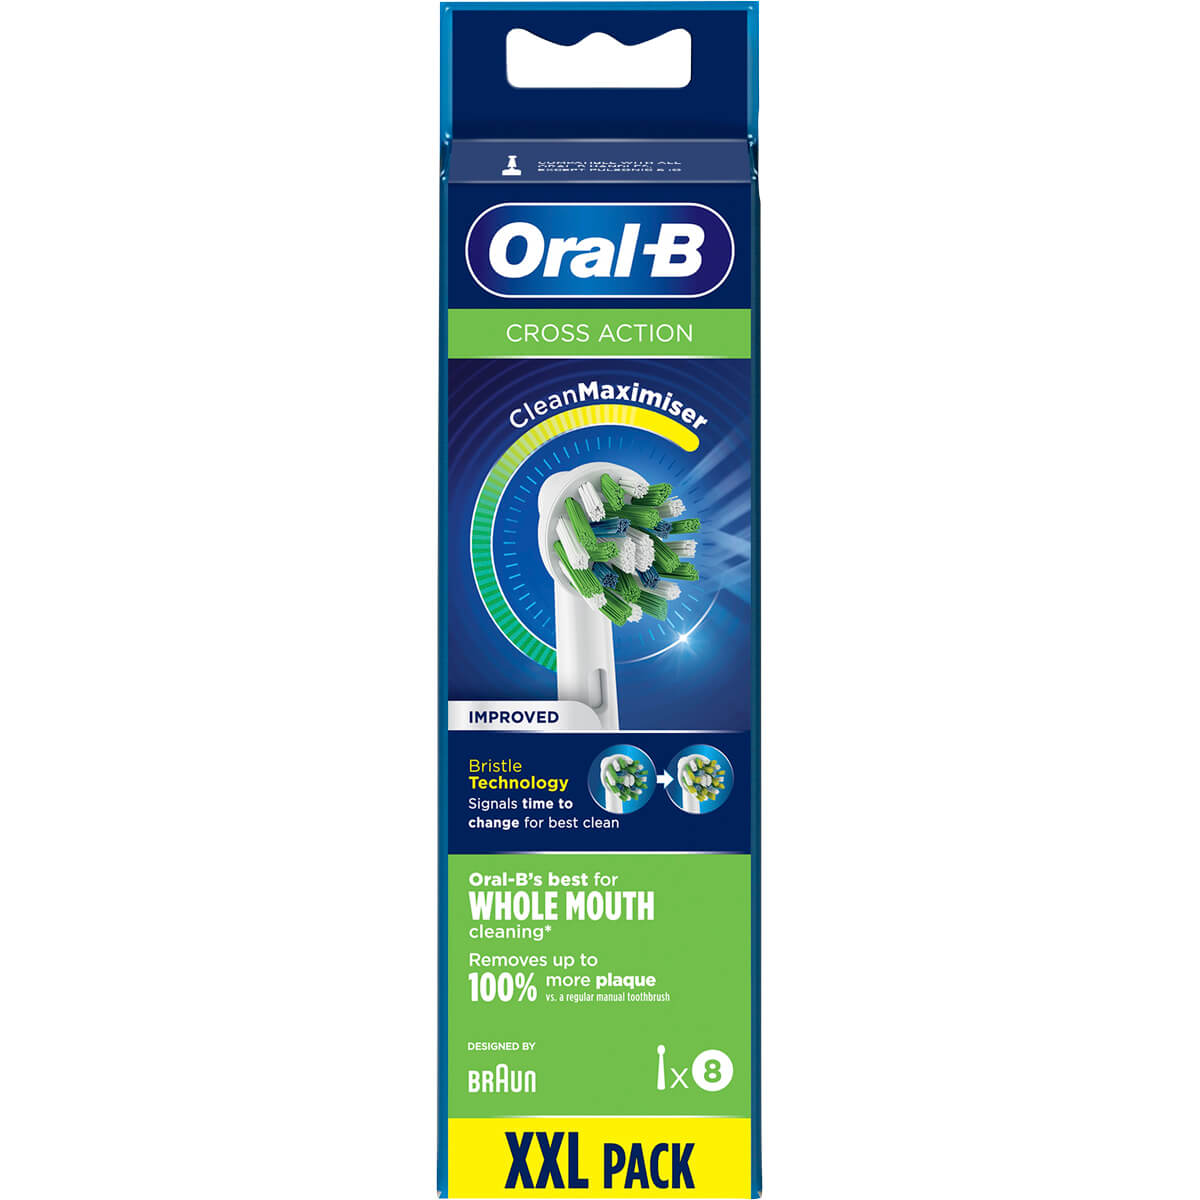 Oral-B Cross Action Power Toothbrush Refill Heads (8 Pack)